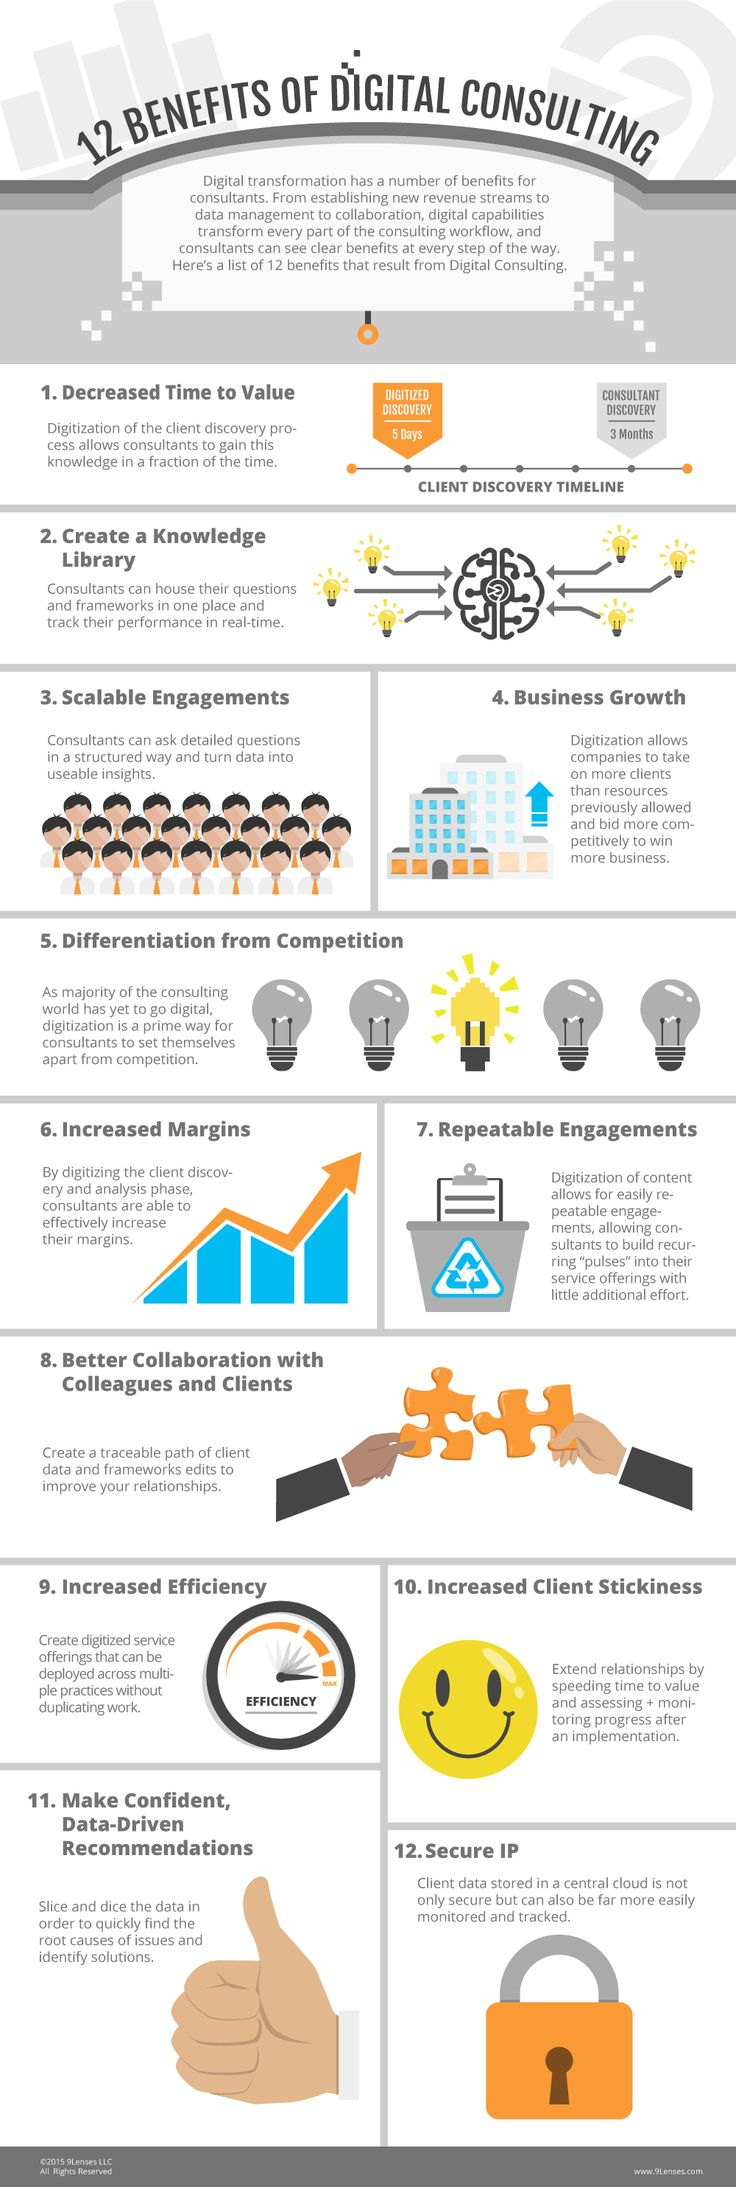 Top 12 Digital Consulting Benefits [Infographic]